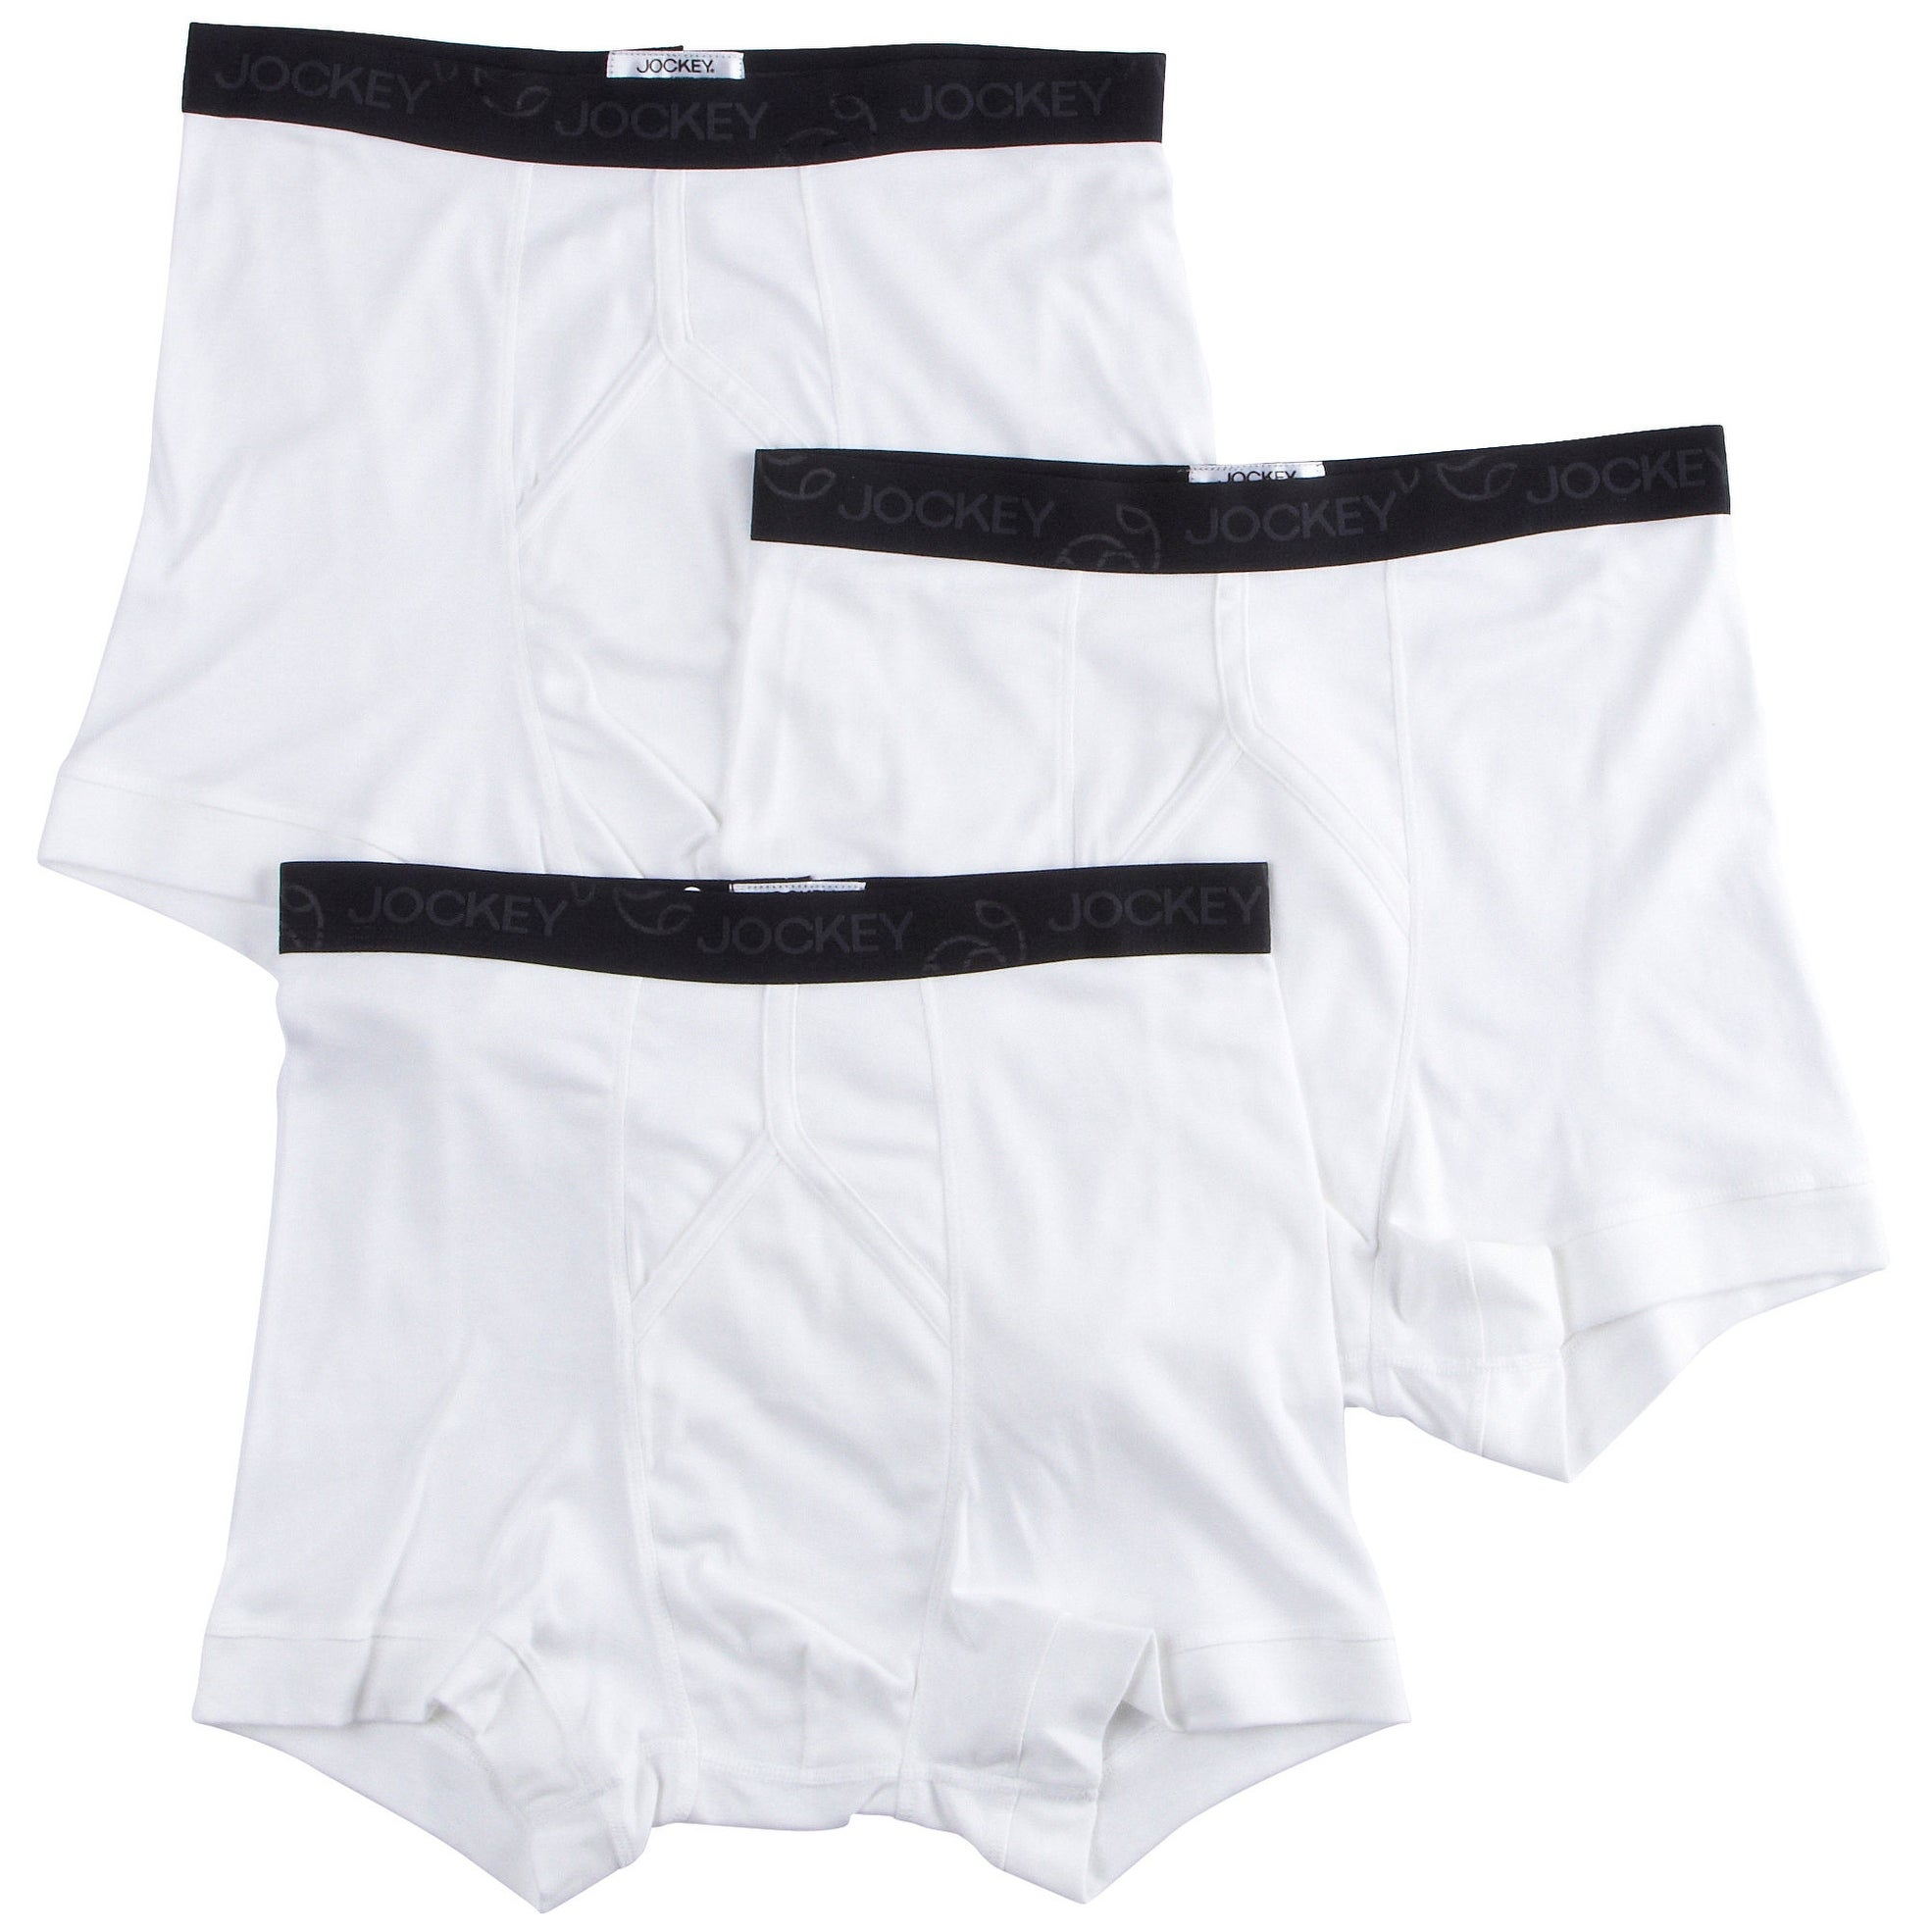 c9bec7b2a7c1a1 Shop Jockey Men's Underwear Staycool Boxer Brief - 3 Pack, 8802 - Free  Shipping On Orders Over $45 - Overstock - 20289835